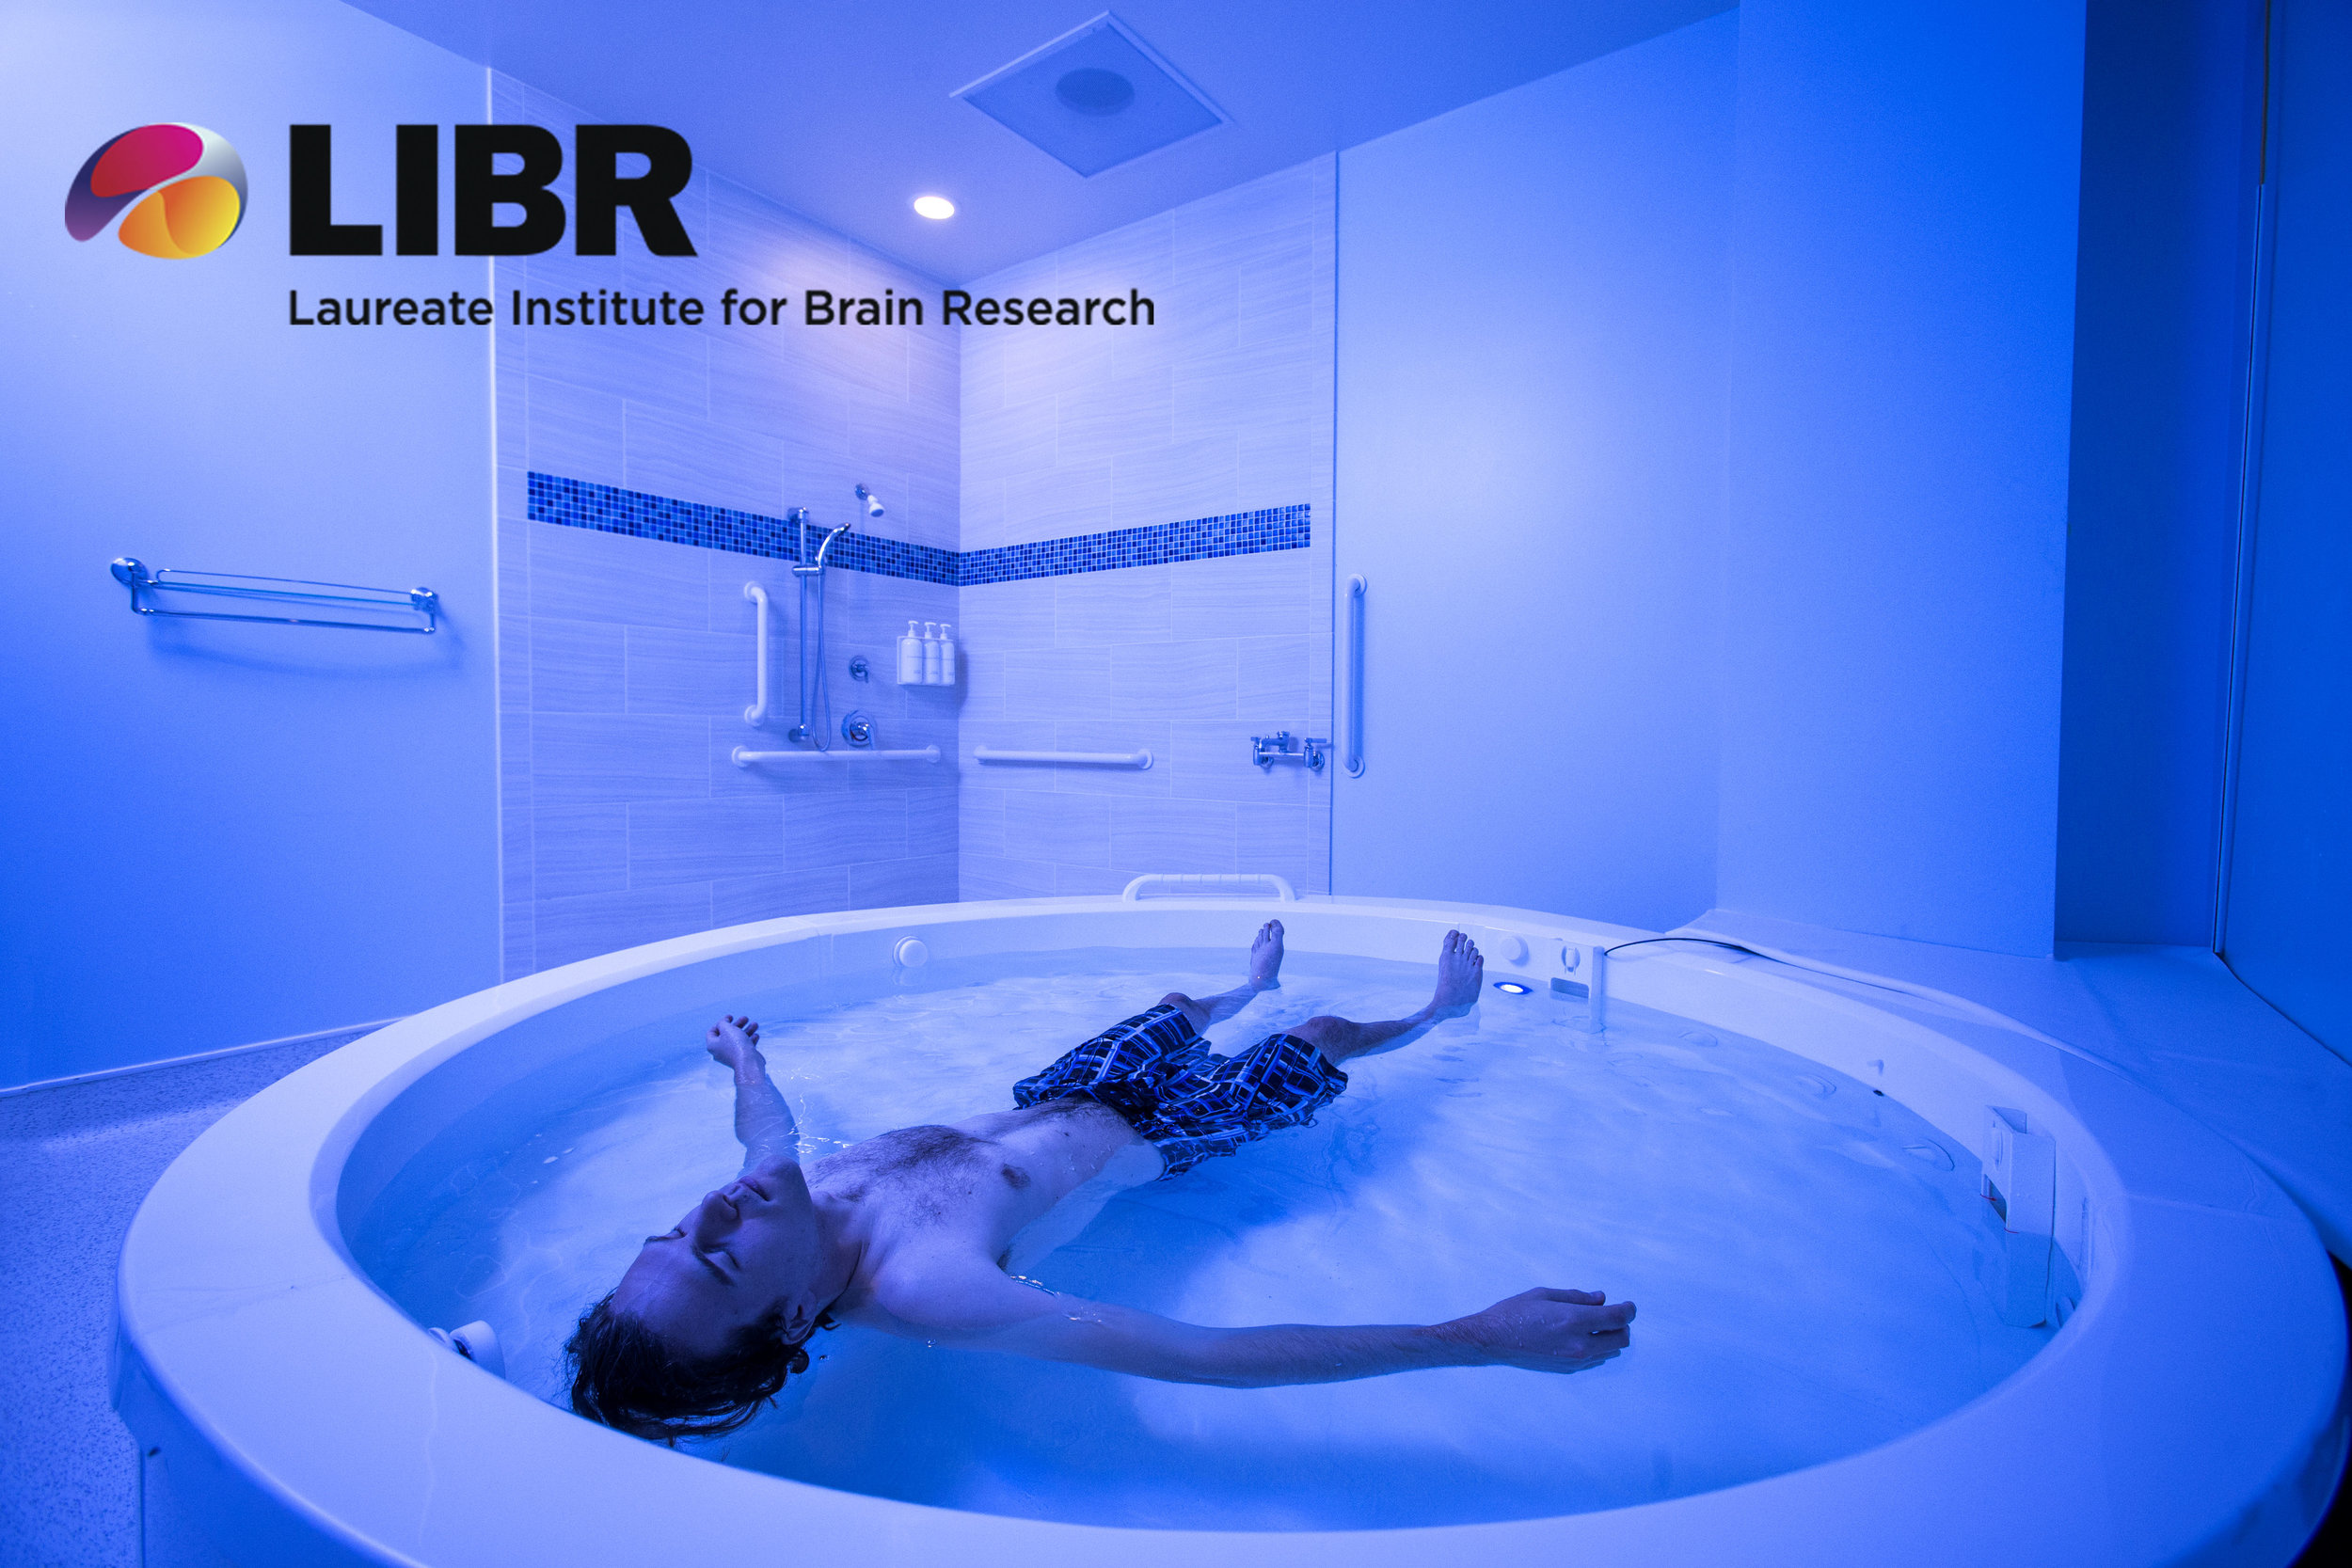 The Float Clinic at LIBR